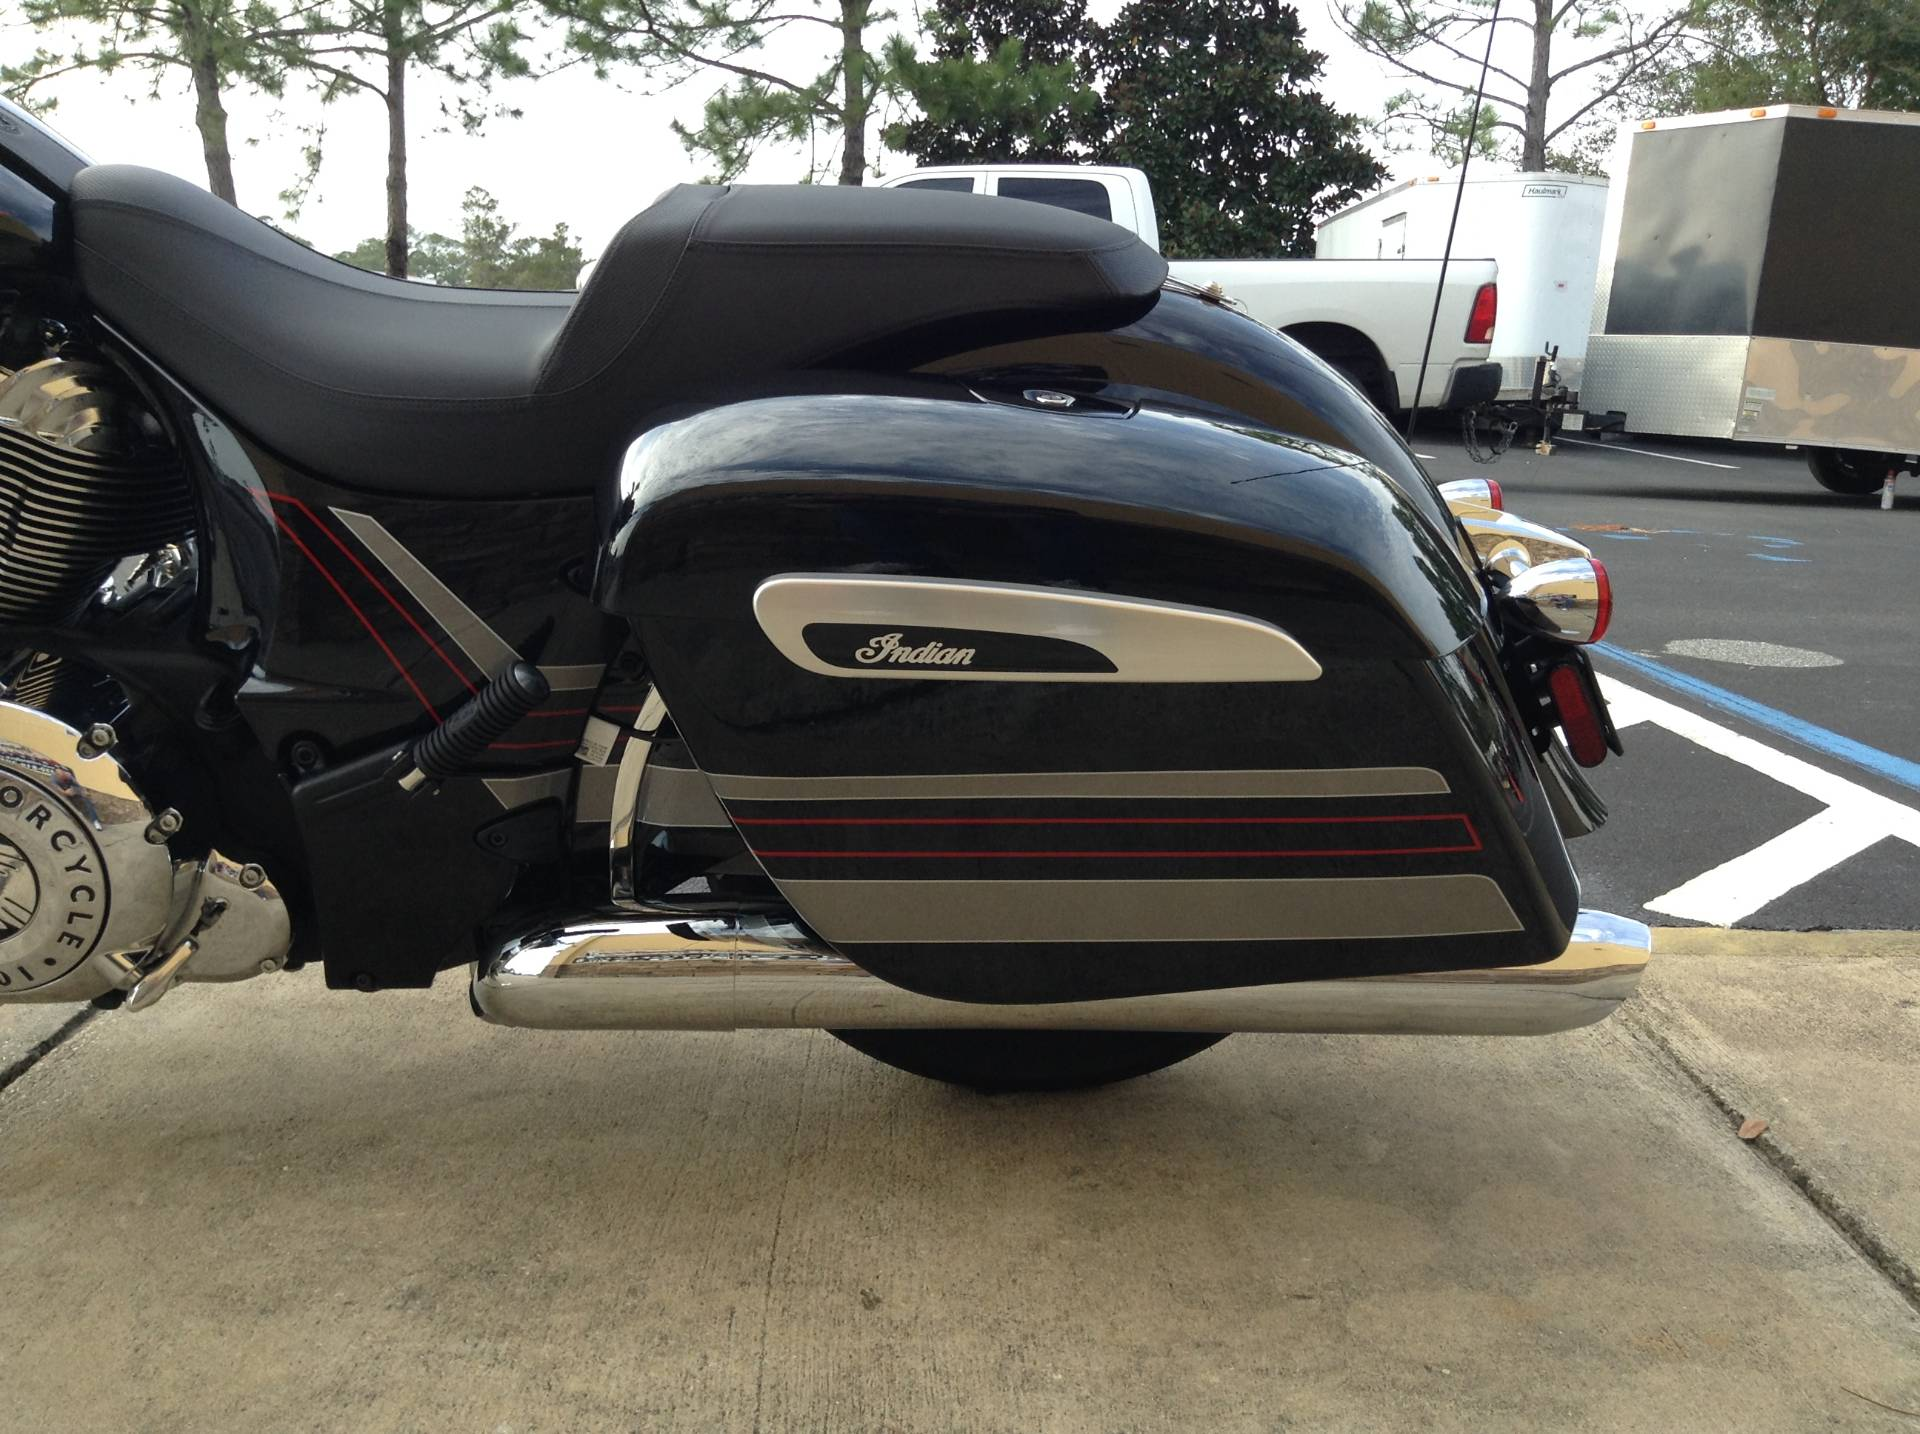 2020 Indian Chieftain® Limited in Panama City Beach, Florida - Photo 10